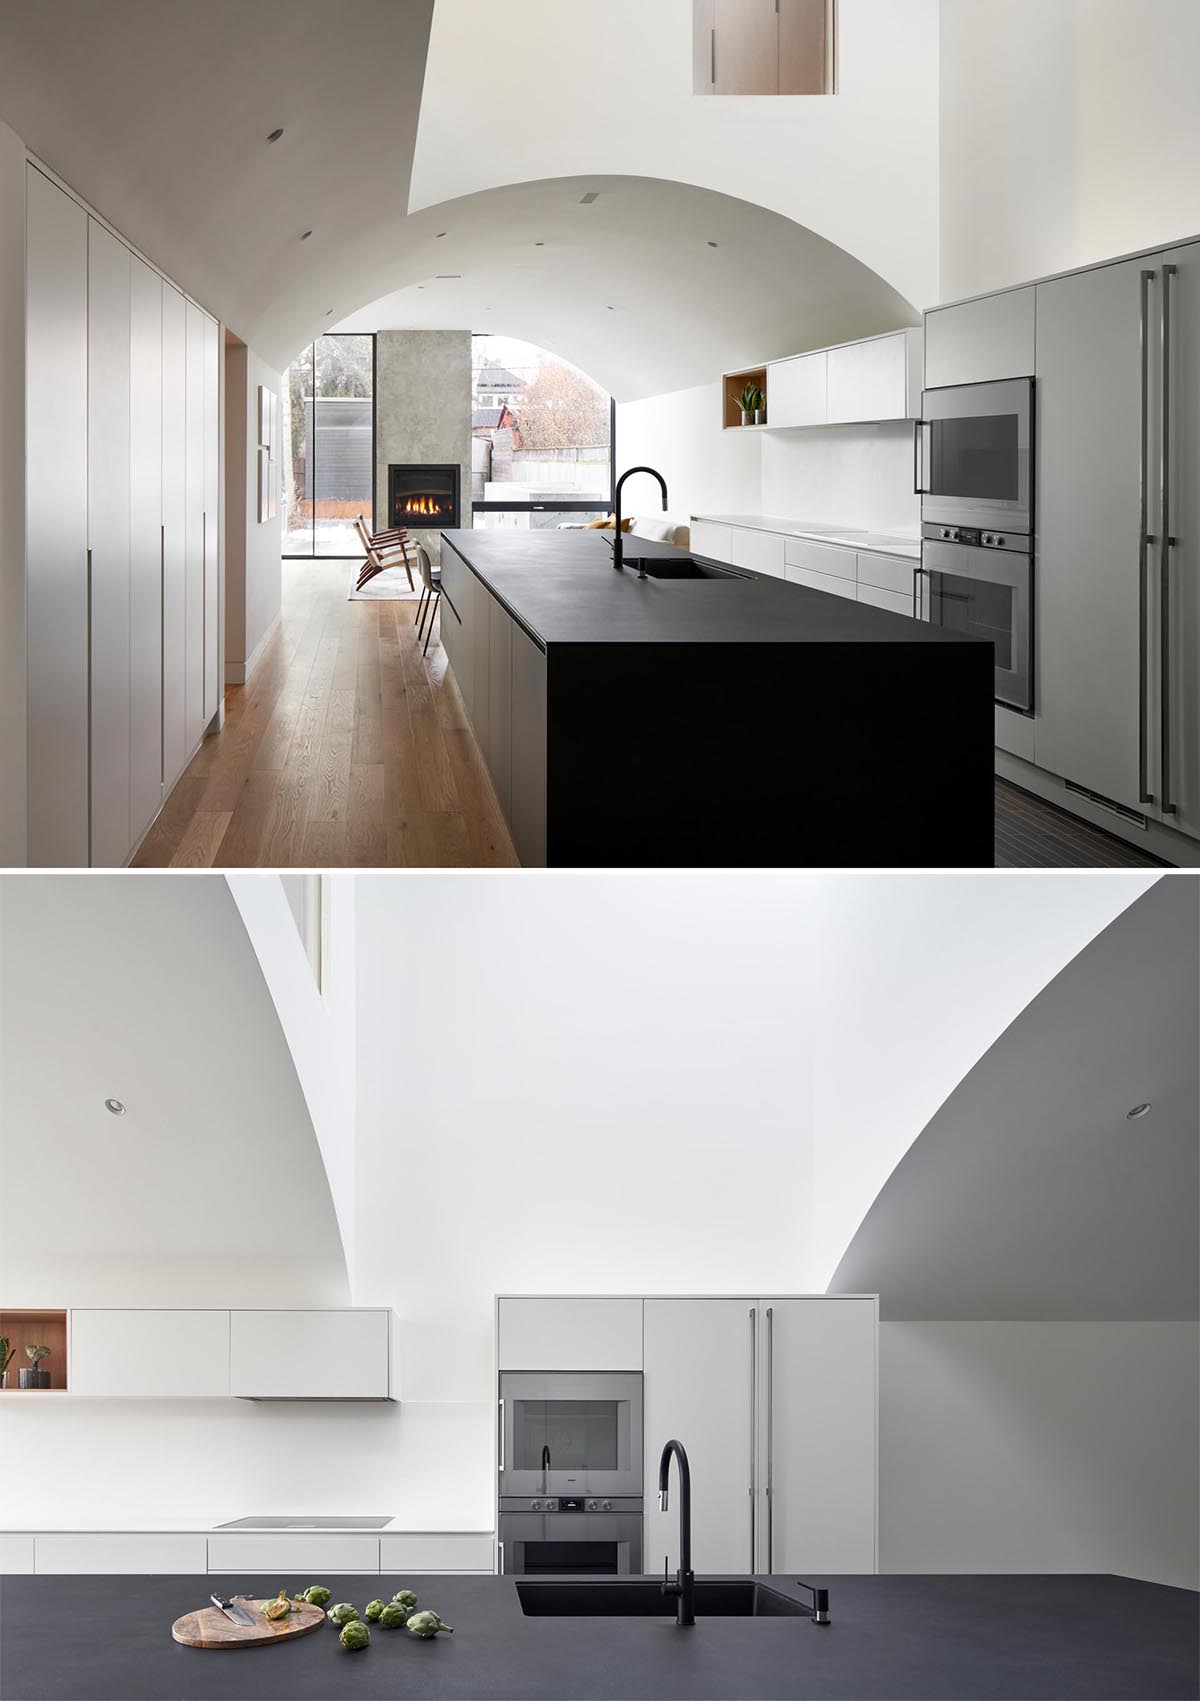 This kitchen, which has white minimalist cabinets that line the wall, and a matte blue kitchen island, also includes a more casual dining area by the living room.